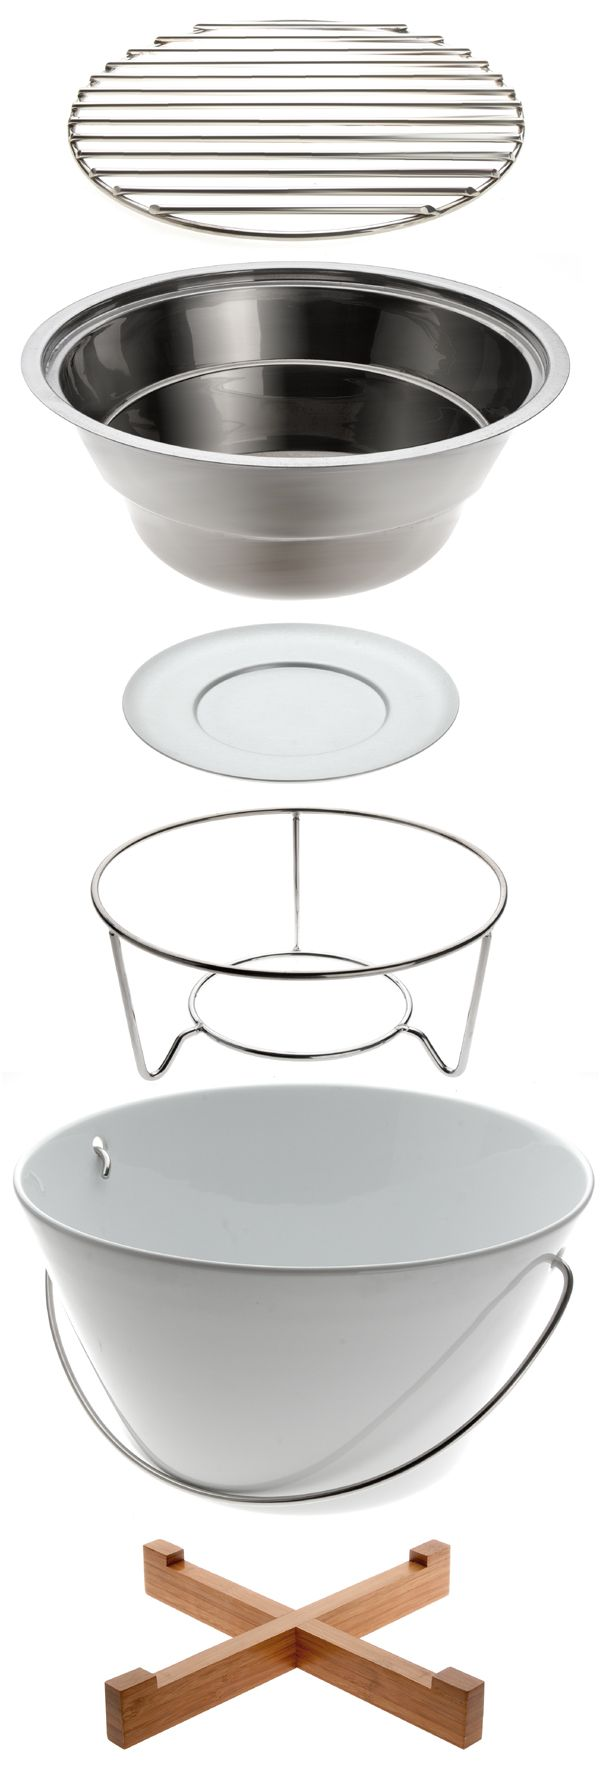 Table grill by Eva Solo